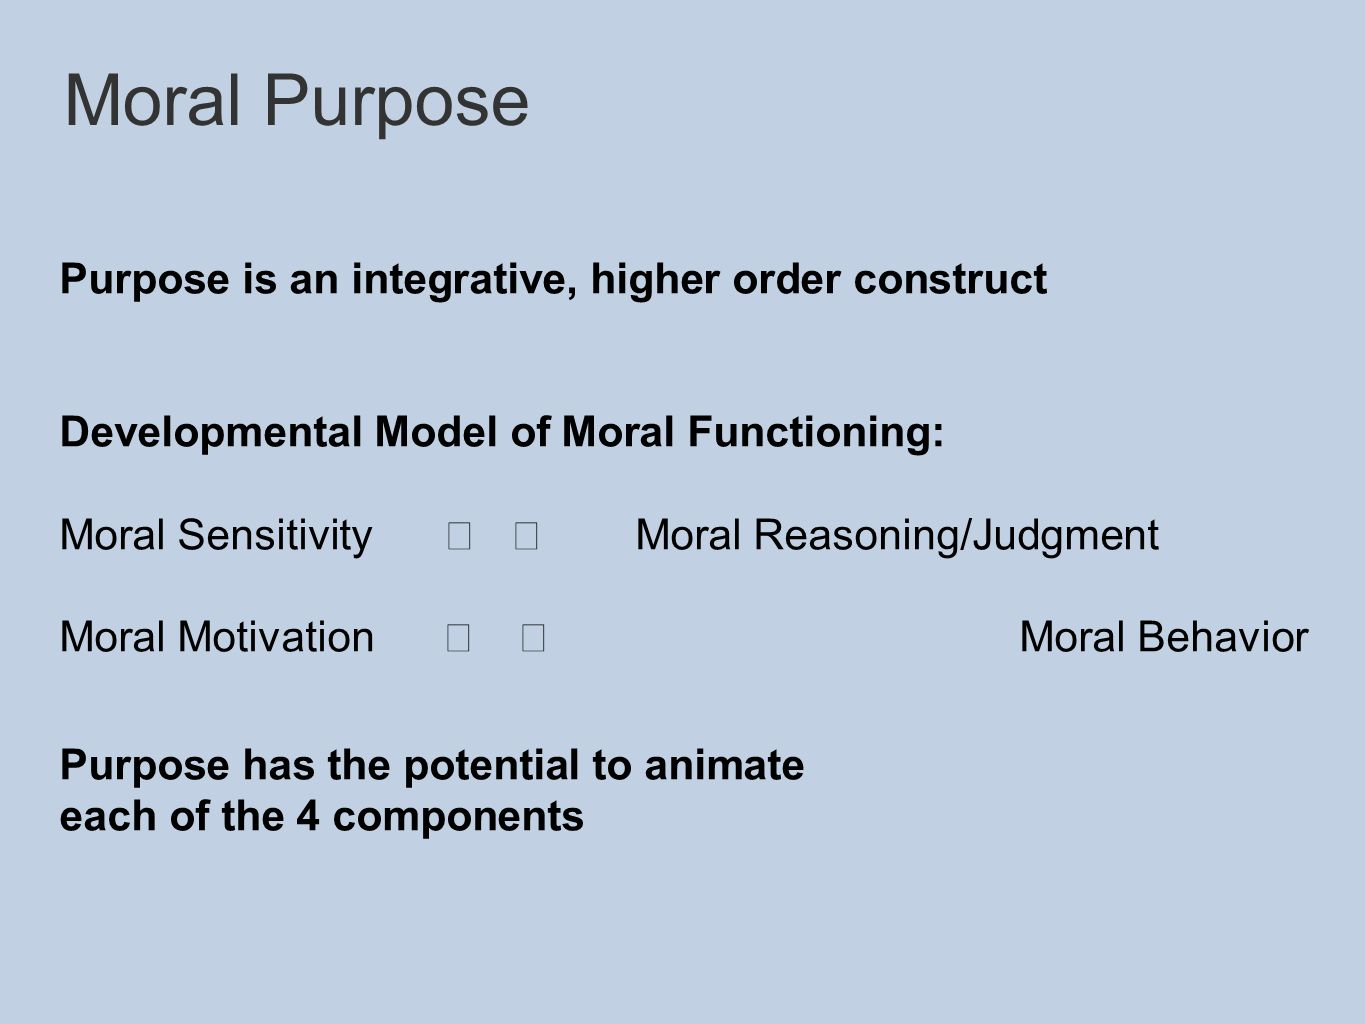 Purpose is an integrative, higher order construct Developmental Model of Moral Functioning: Moral Sensitivity   Moral Reasoning/Judgment Moral Motivation  Moral Behavior Purpose has the potential to animate each of the 4 components Moral Purpose